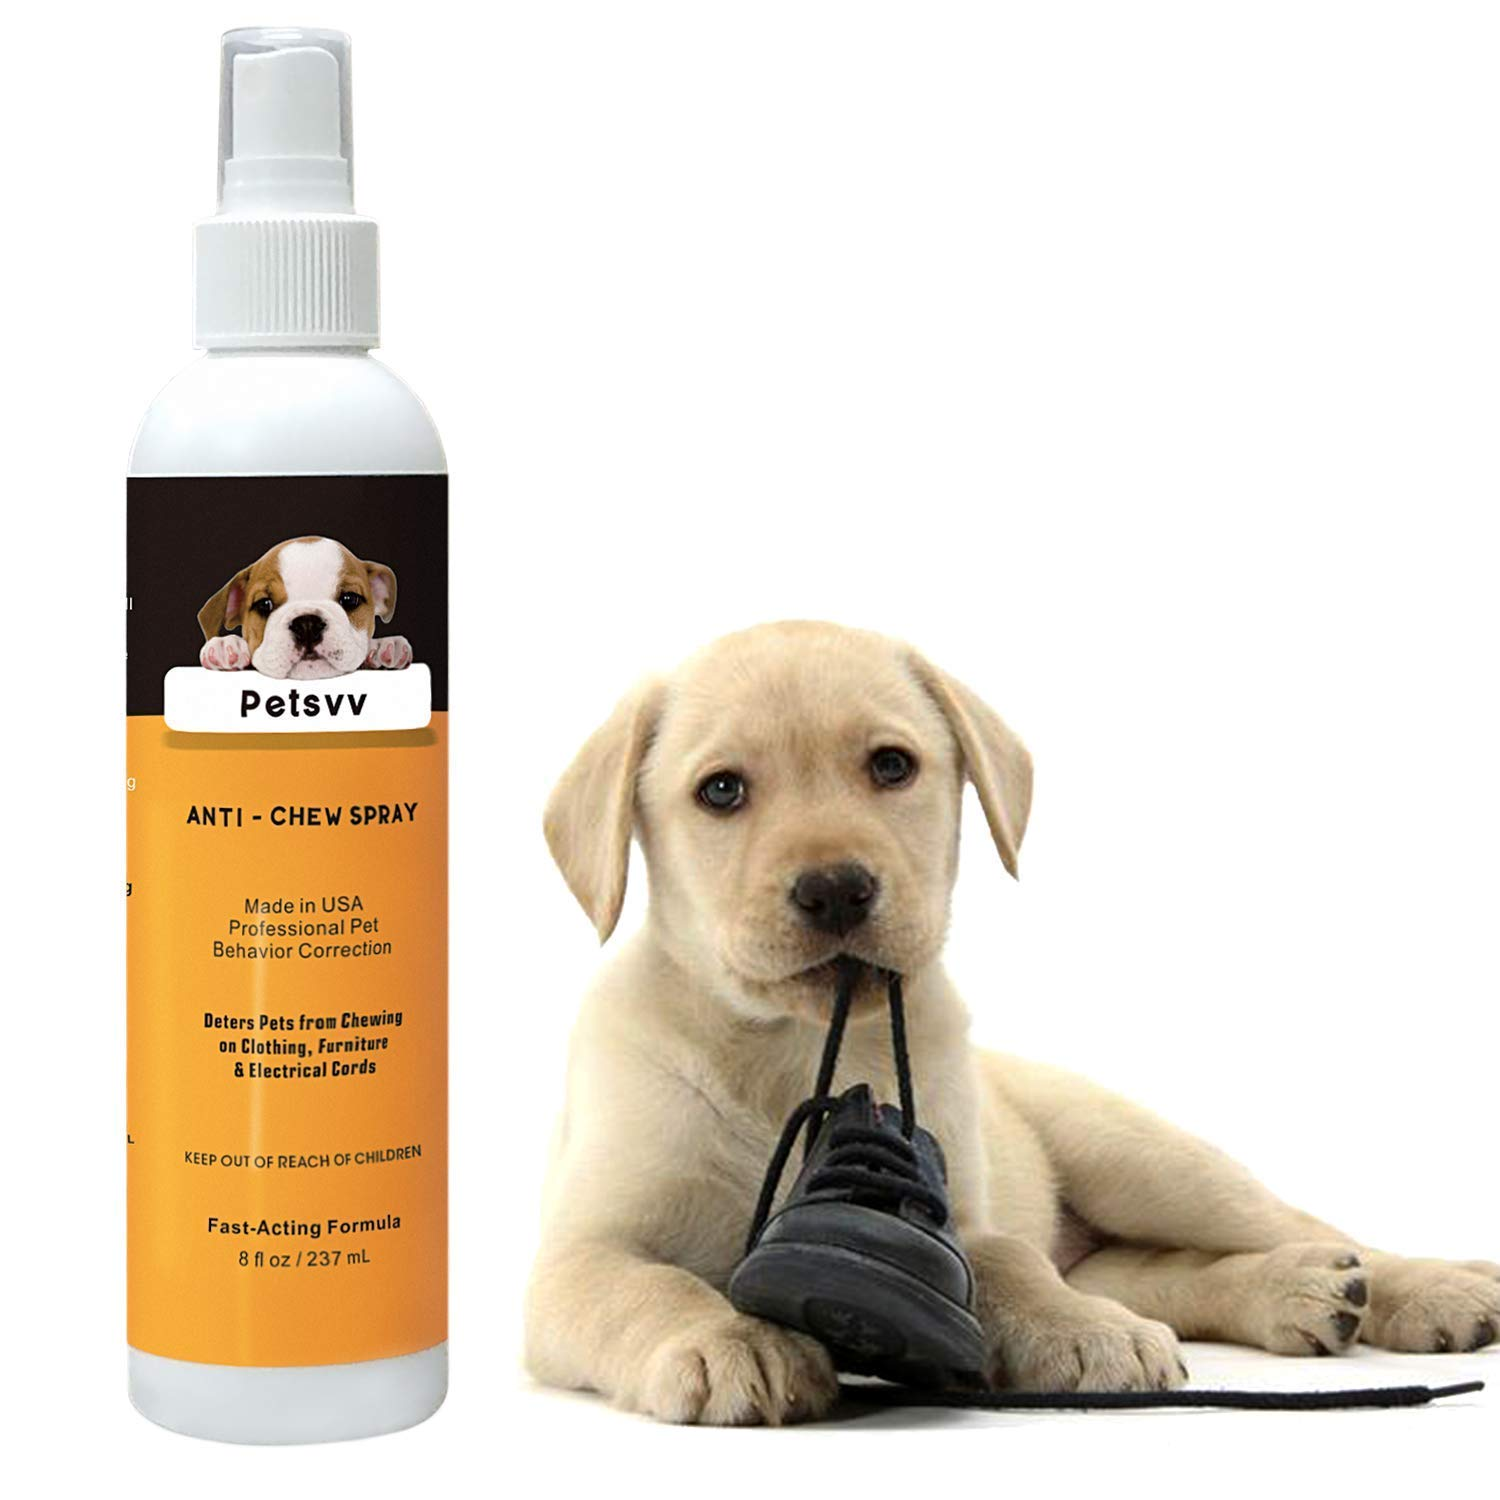 Petsvv Anti Chew Spray for Dogs, No Chew Natural Bitter Training Corrector to Stop Biting | Non-Toxic | Alcohol Free | Made in USA - 8oz